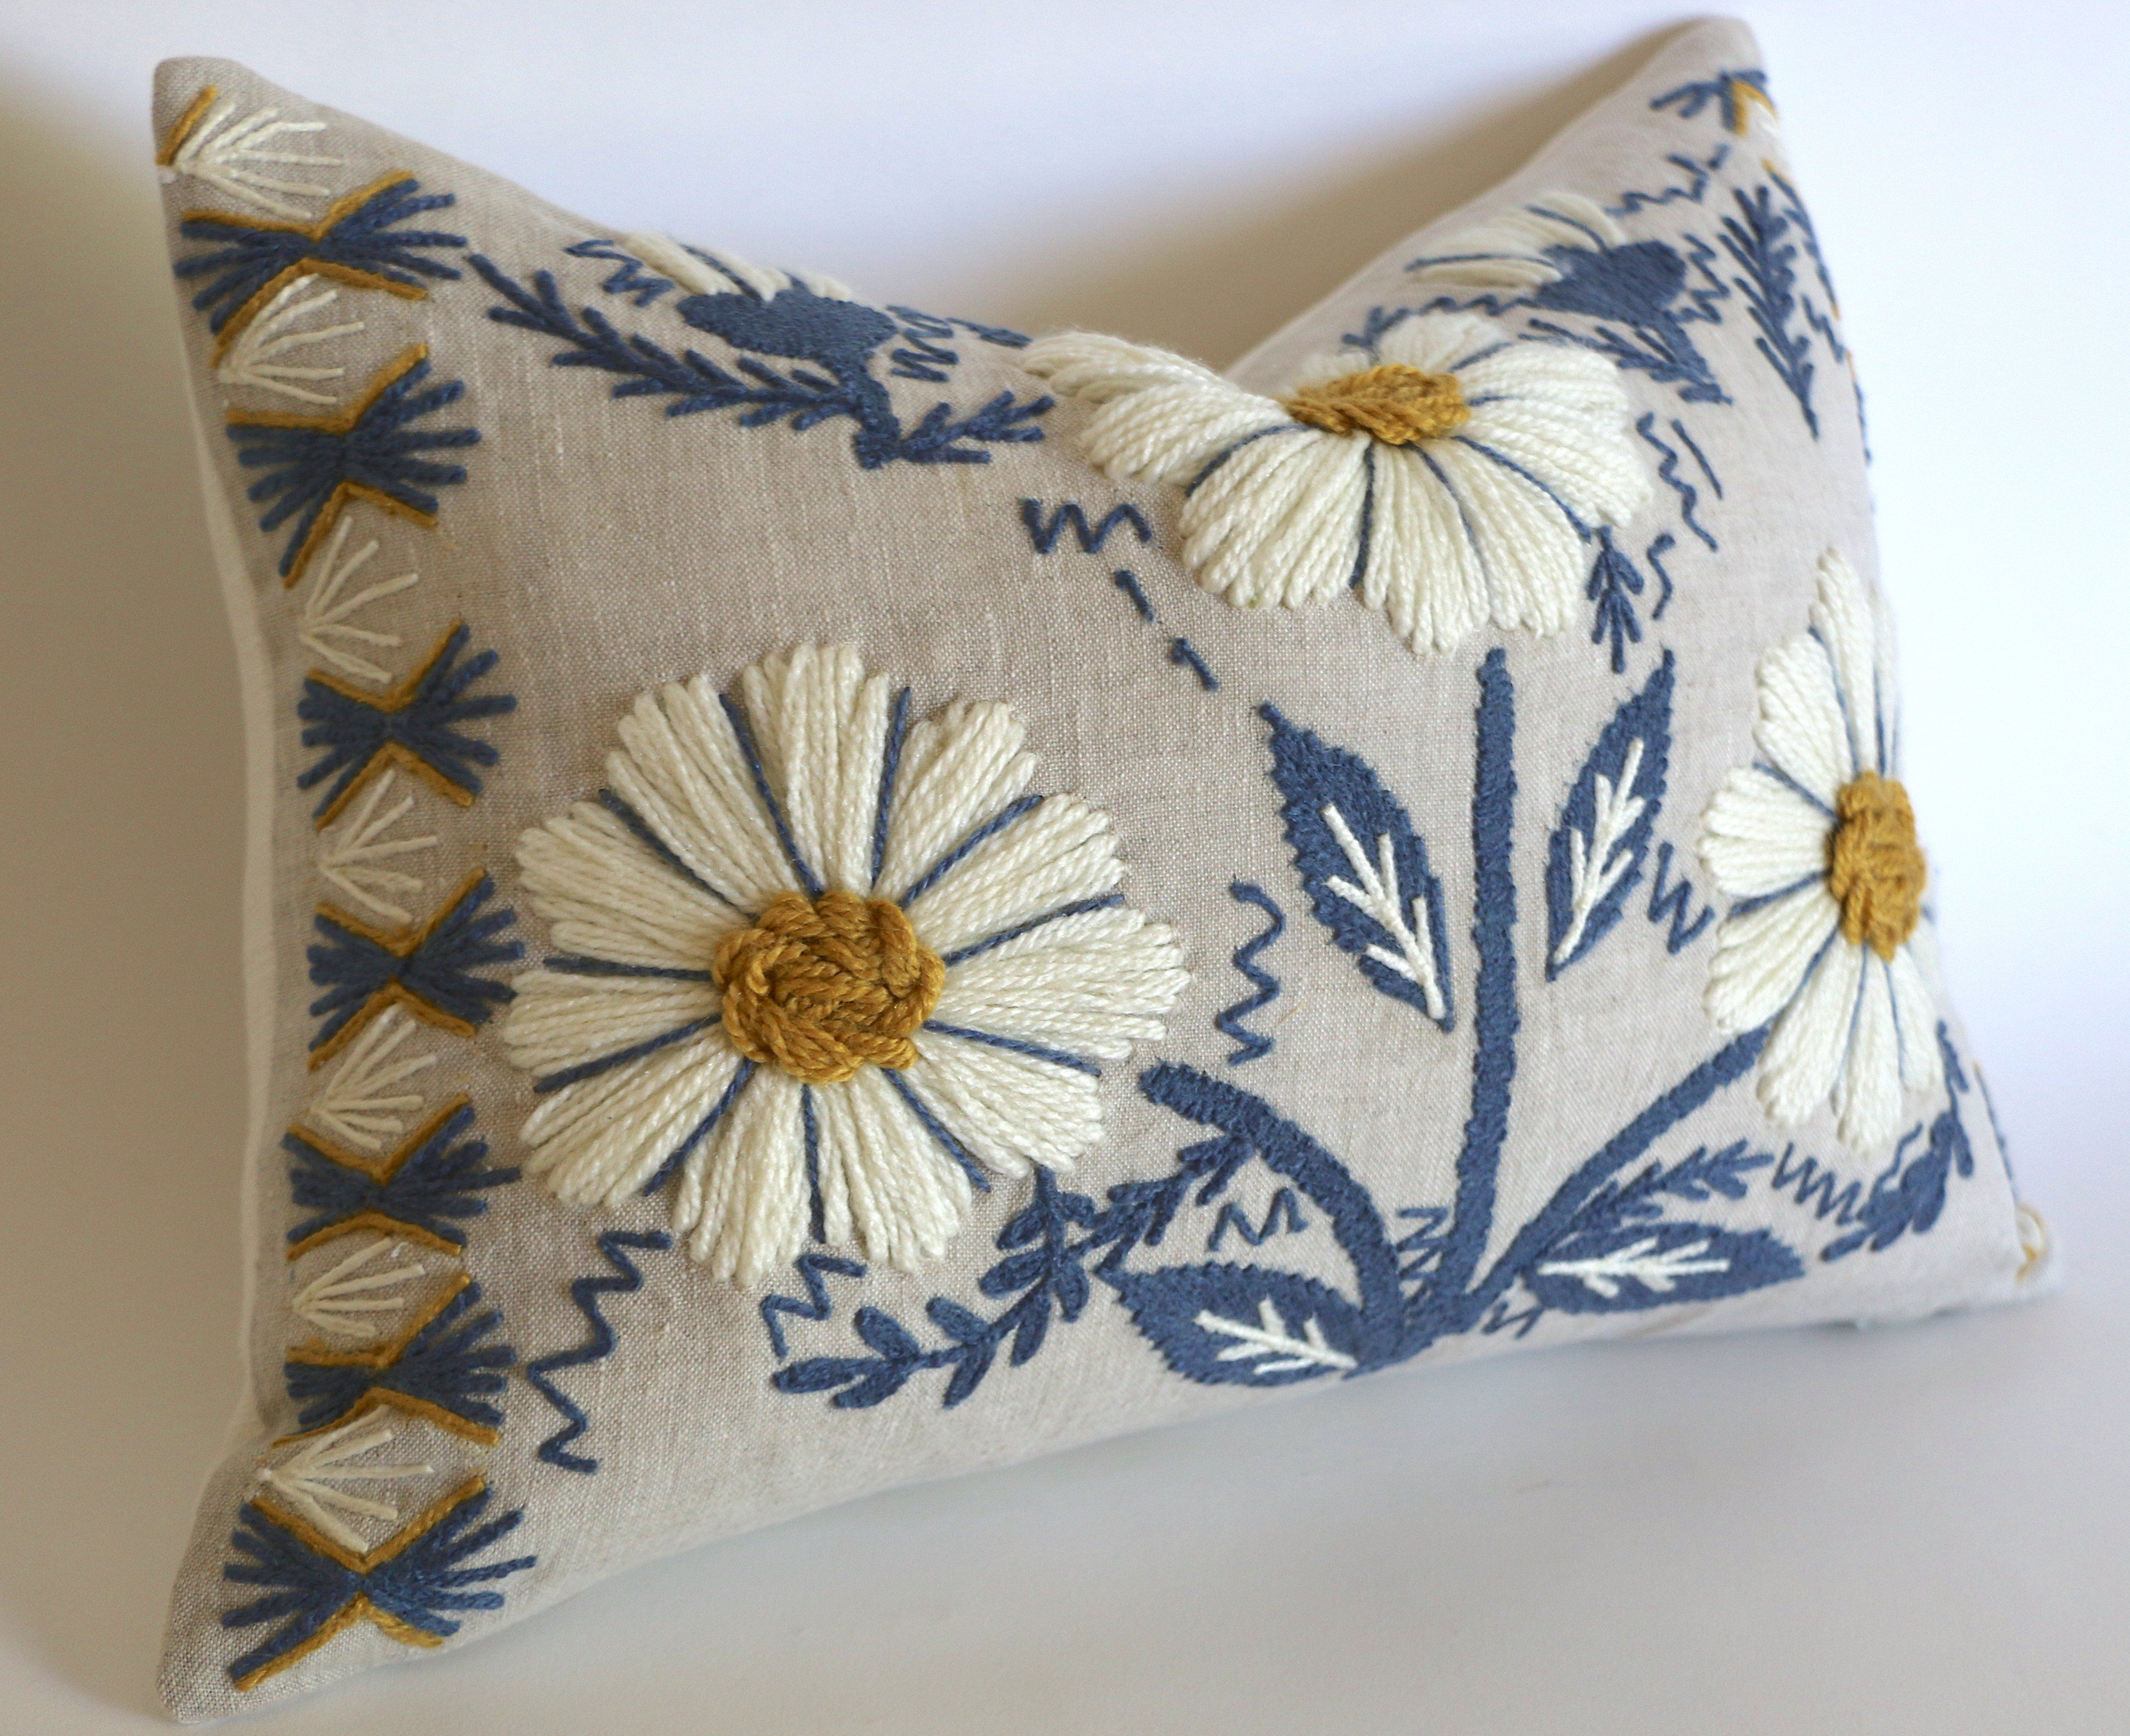 Schumacher Swedish Wool Embroidered Pillow Cover in Blue, Ochre, & Natural - 22x22